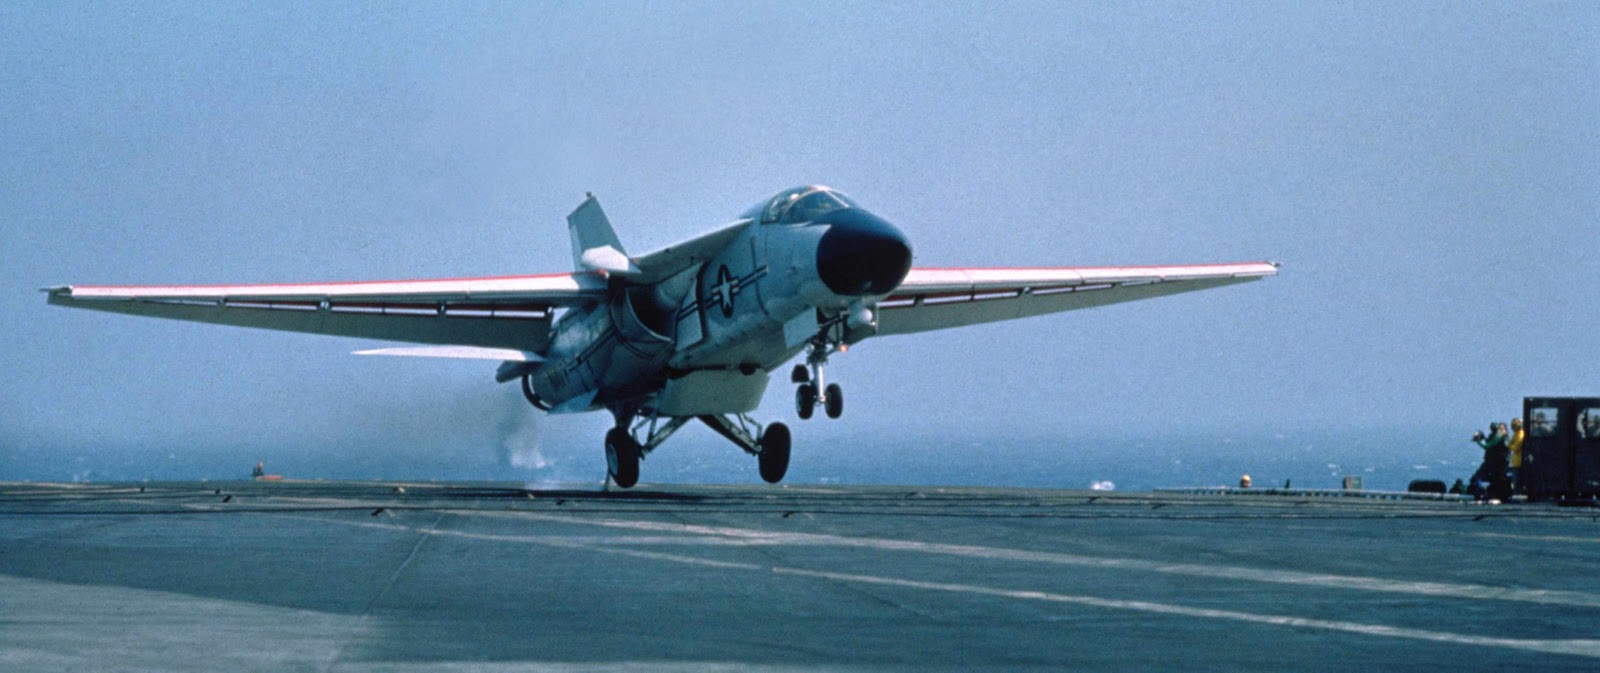 Navy Aircraft History: The F-111B versus the F-14A, One More Time